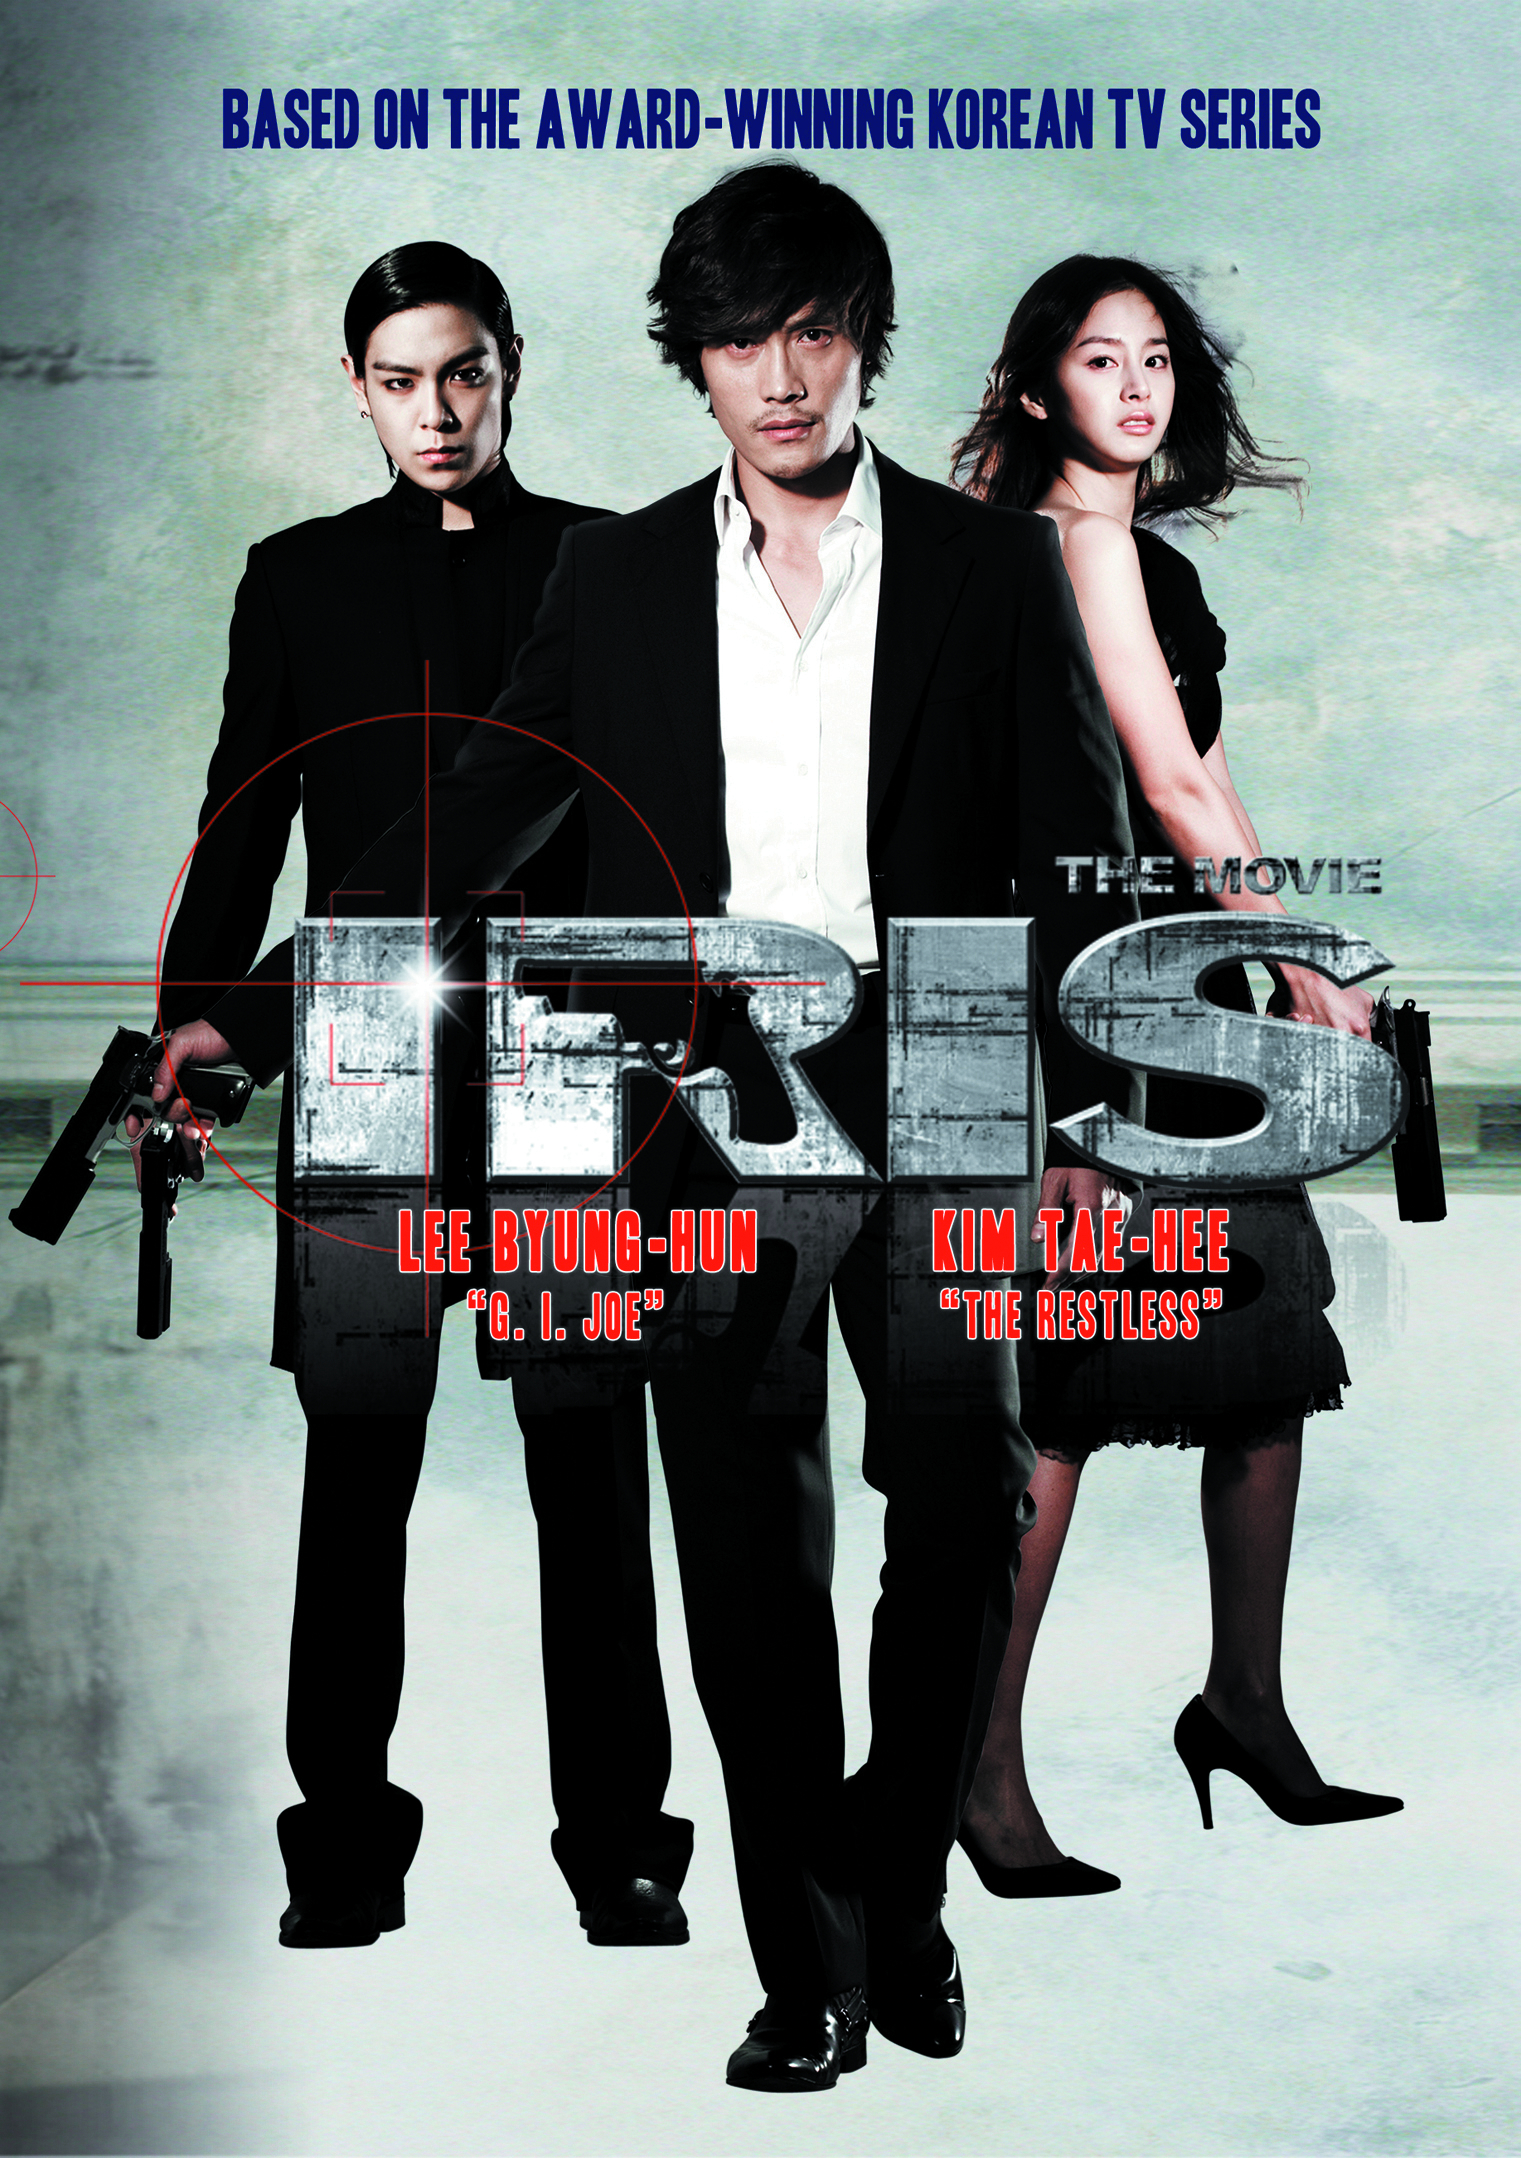 IRIS THE MOVIE DVD